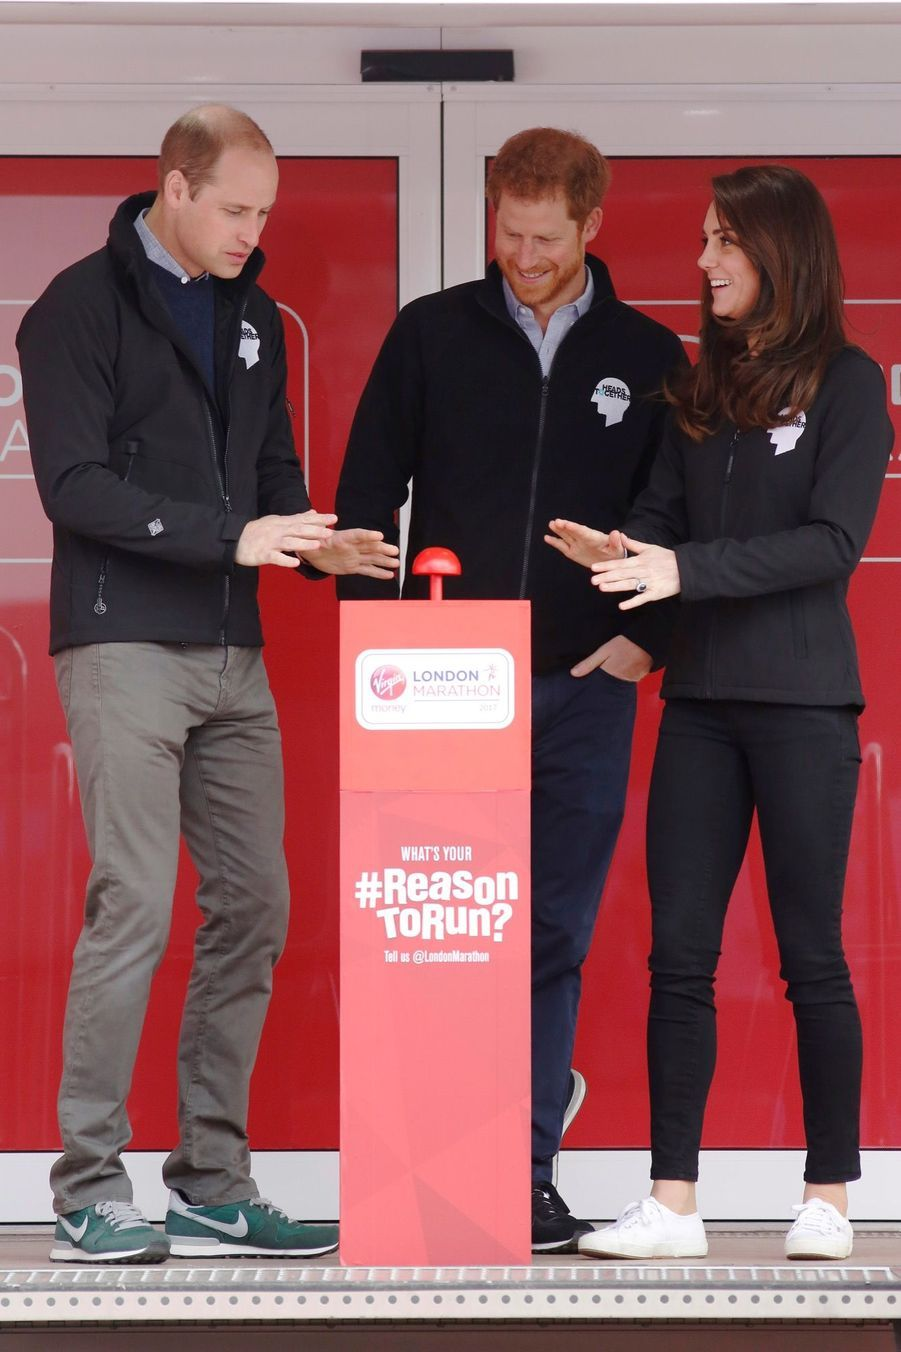 Kate Middleton, Les Princes William Et Harry Au Marathon De Londres, Dimanche 23 Avril 2017 3